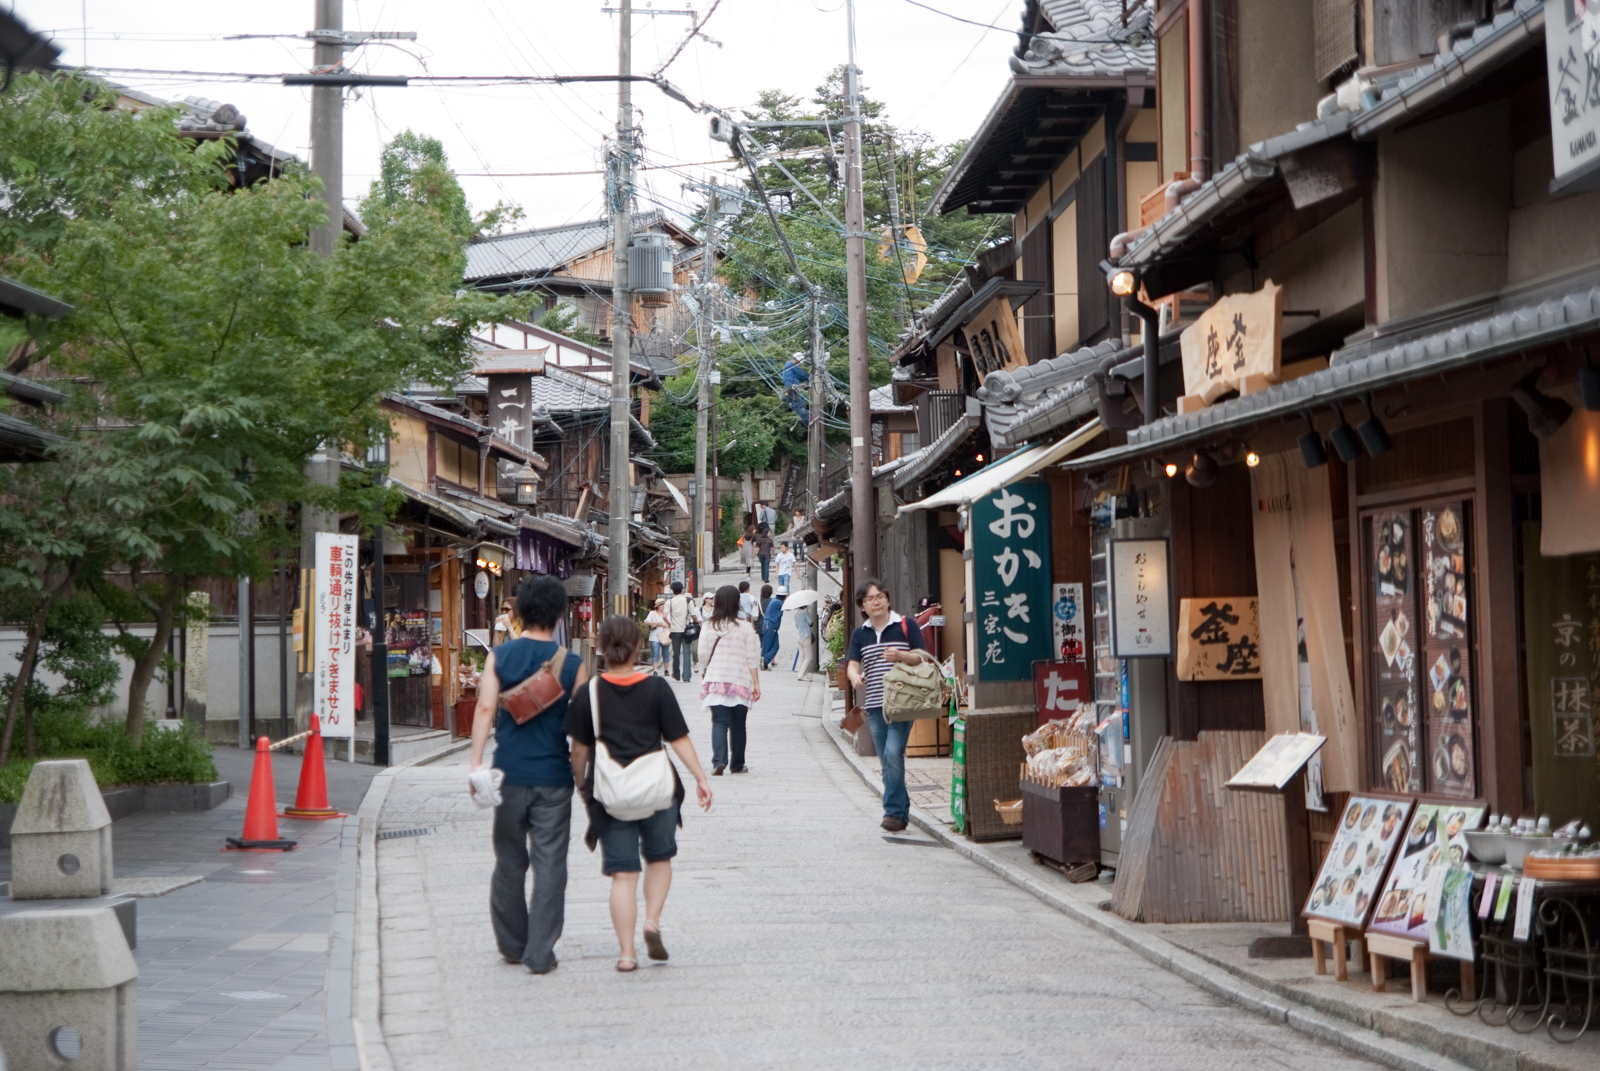 Ninenzaka, a famous old street in Gion with old wooden houses and traditional shops